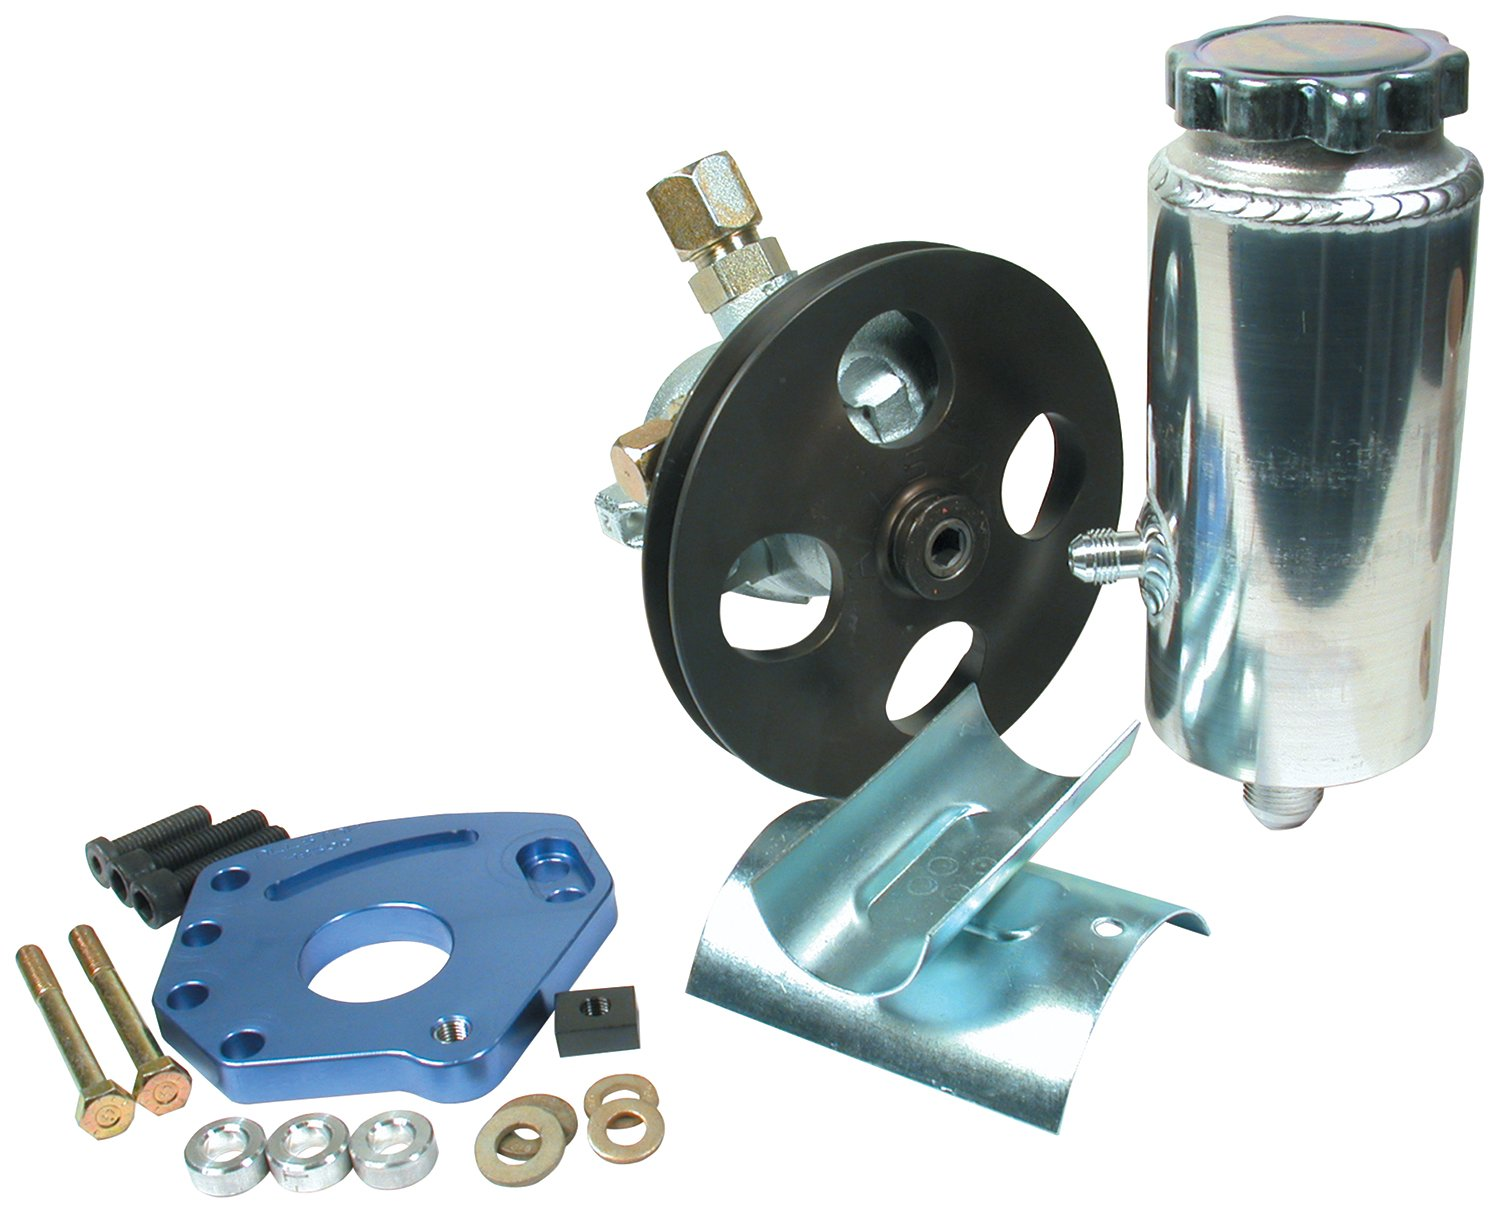 Allstar ALL48240 Head Mount Style Power Steering Kit for Small Block Chevy by Allstar (Image #1)